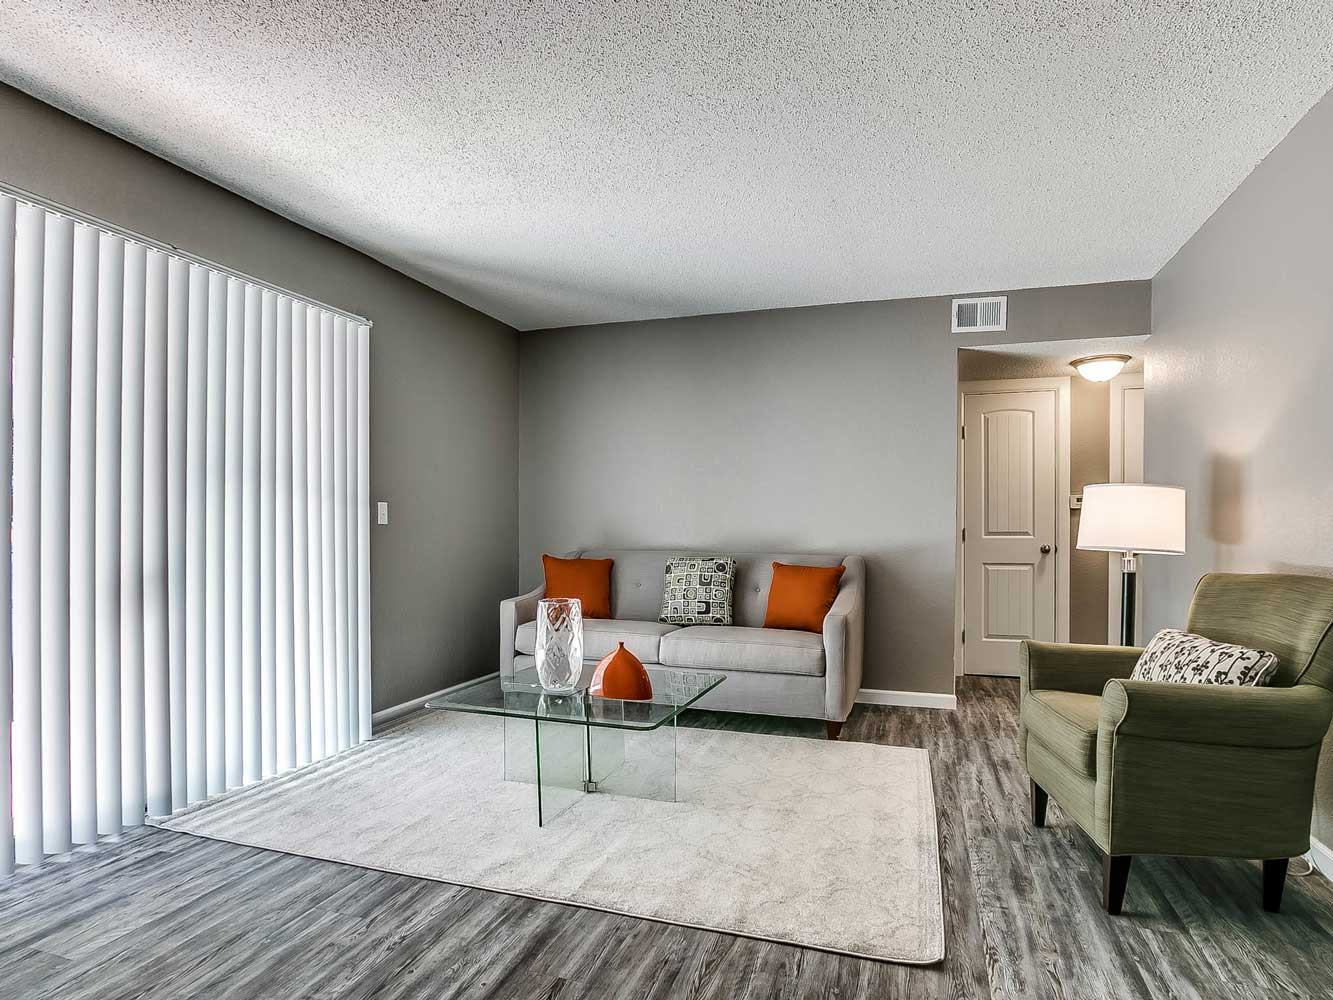 Living Room at The Heights on Forty4 at Oklahoma City, OK